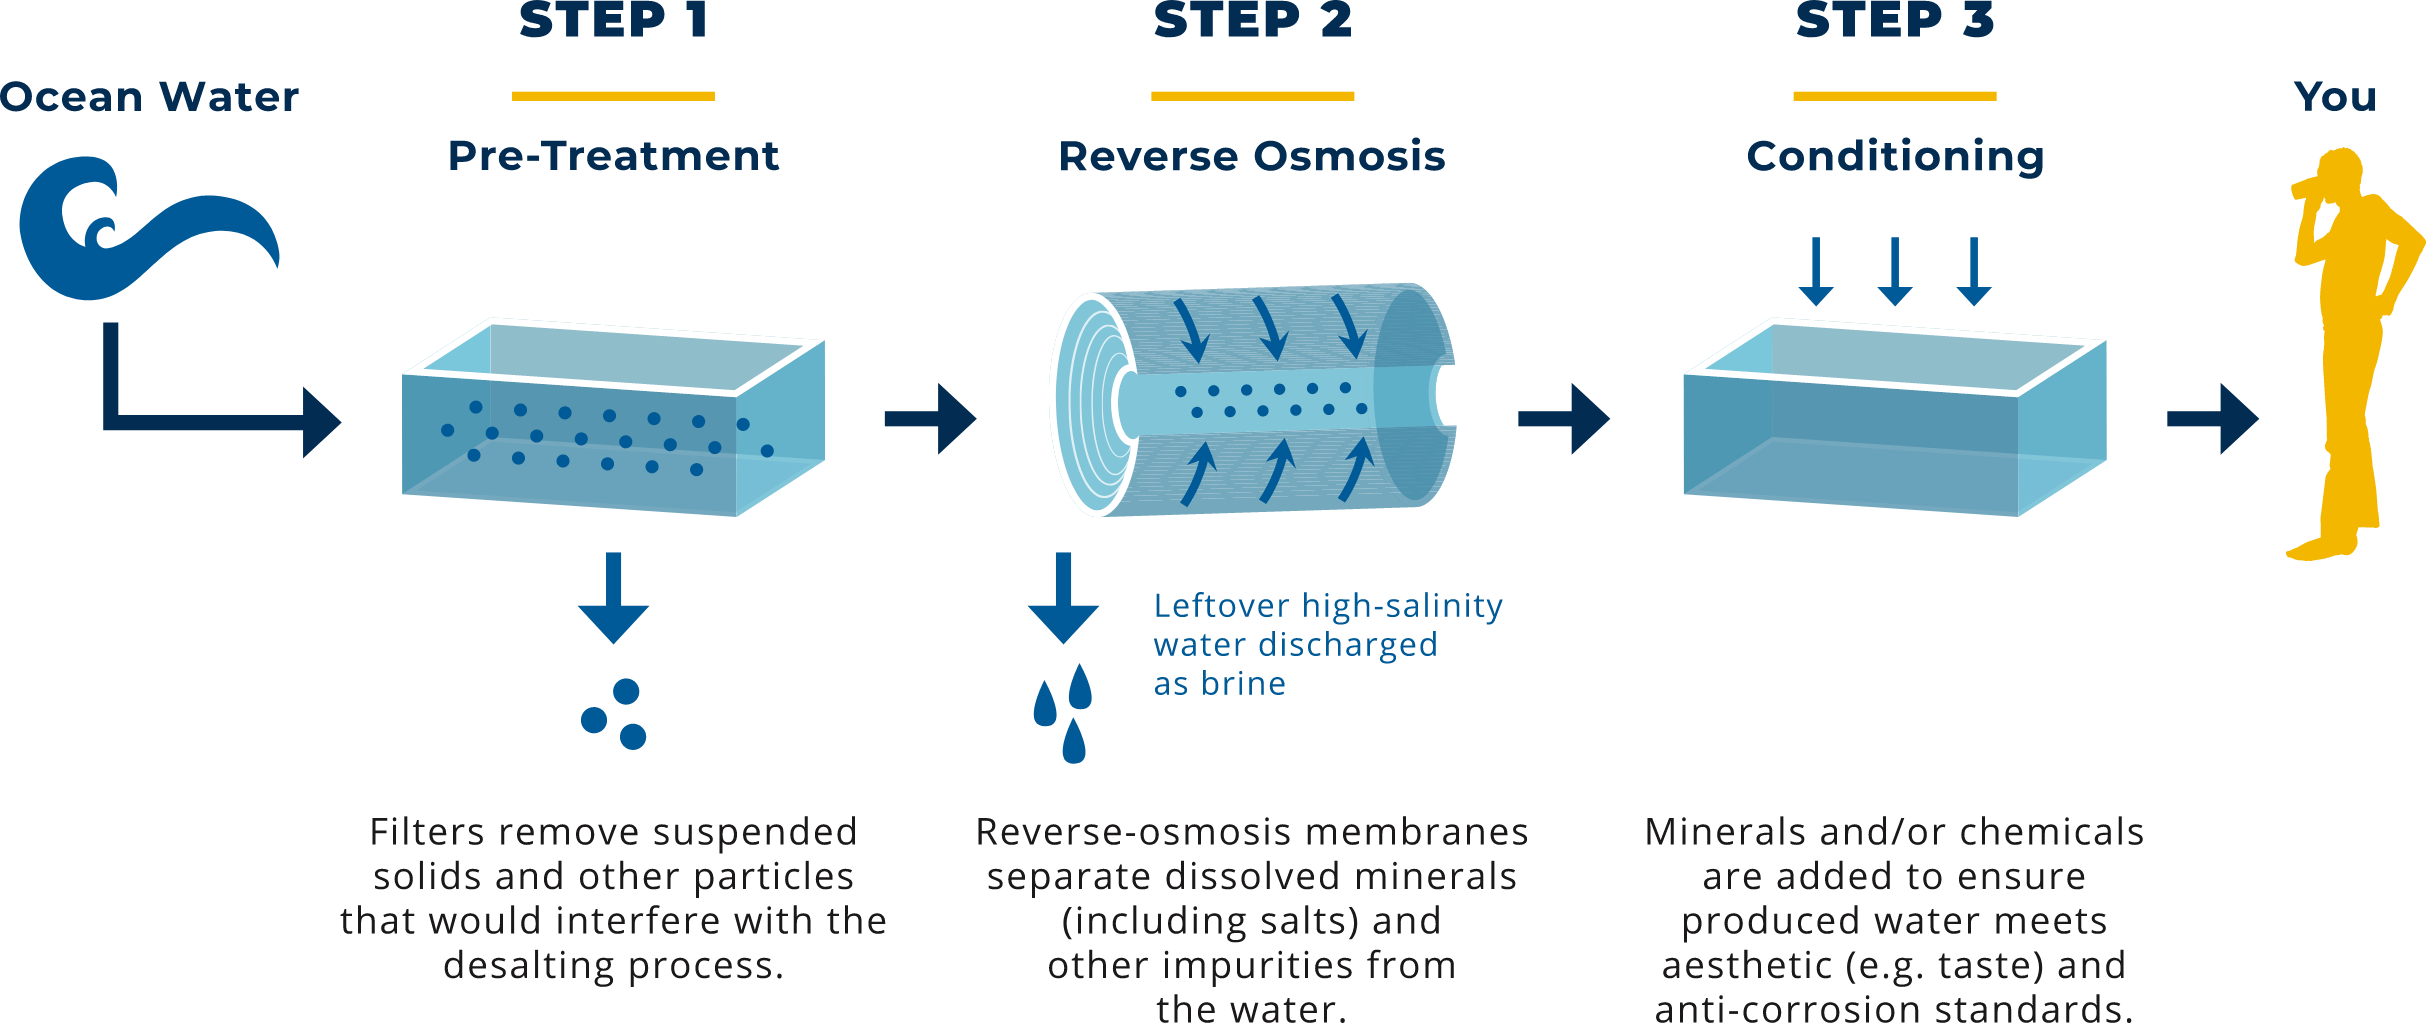 infographic outlining the 3 steps of desalination.  This information is also summarized in the paragraph abo e this image.